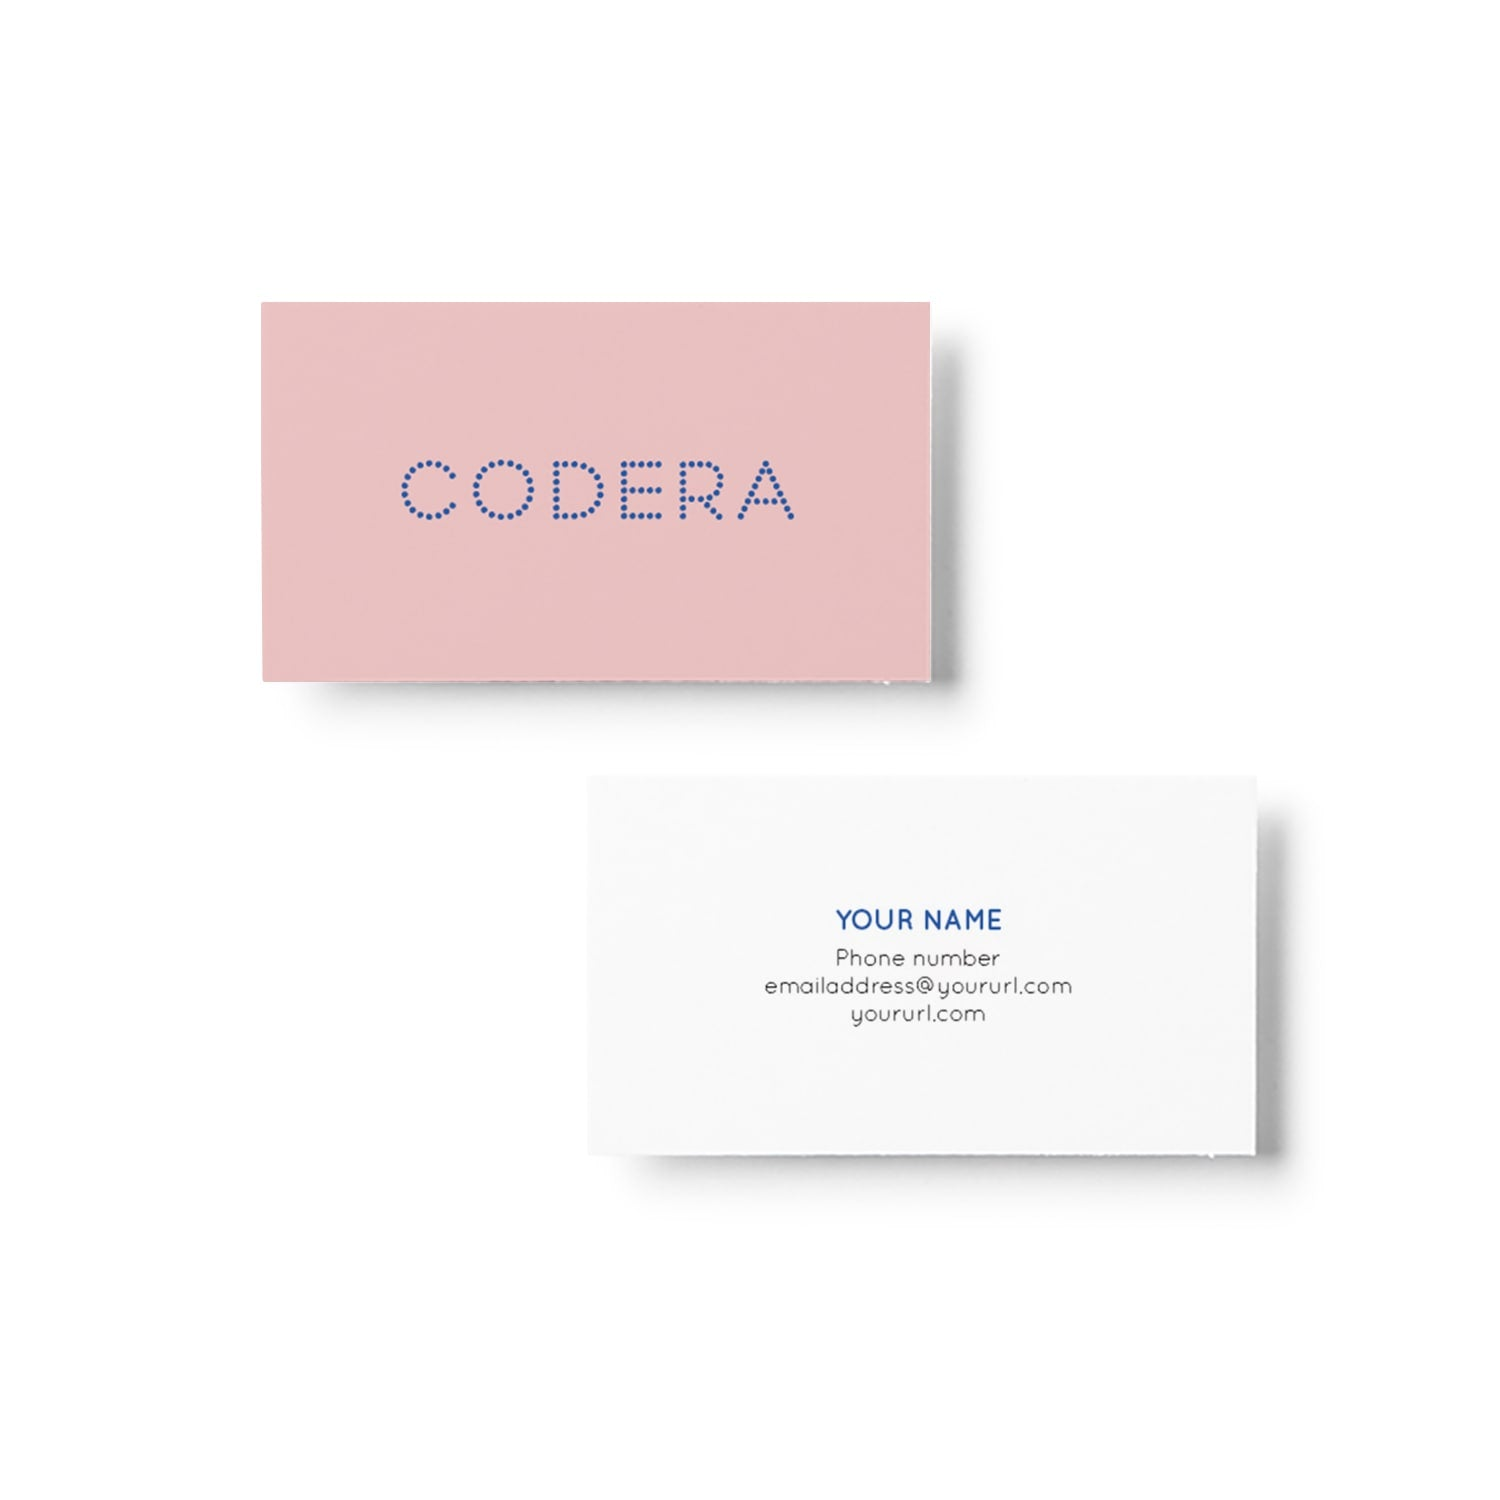 Codera Business Card Design_Copyright Tiny Crowd